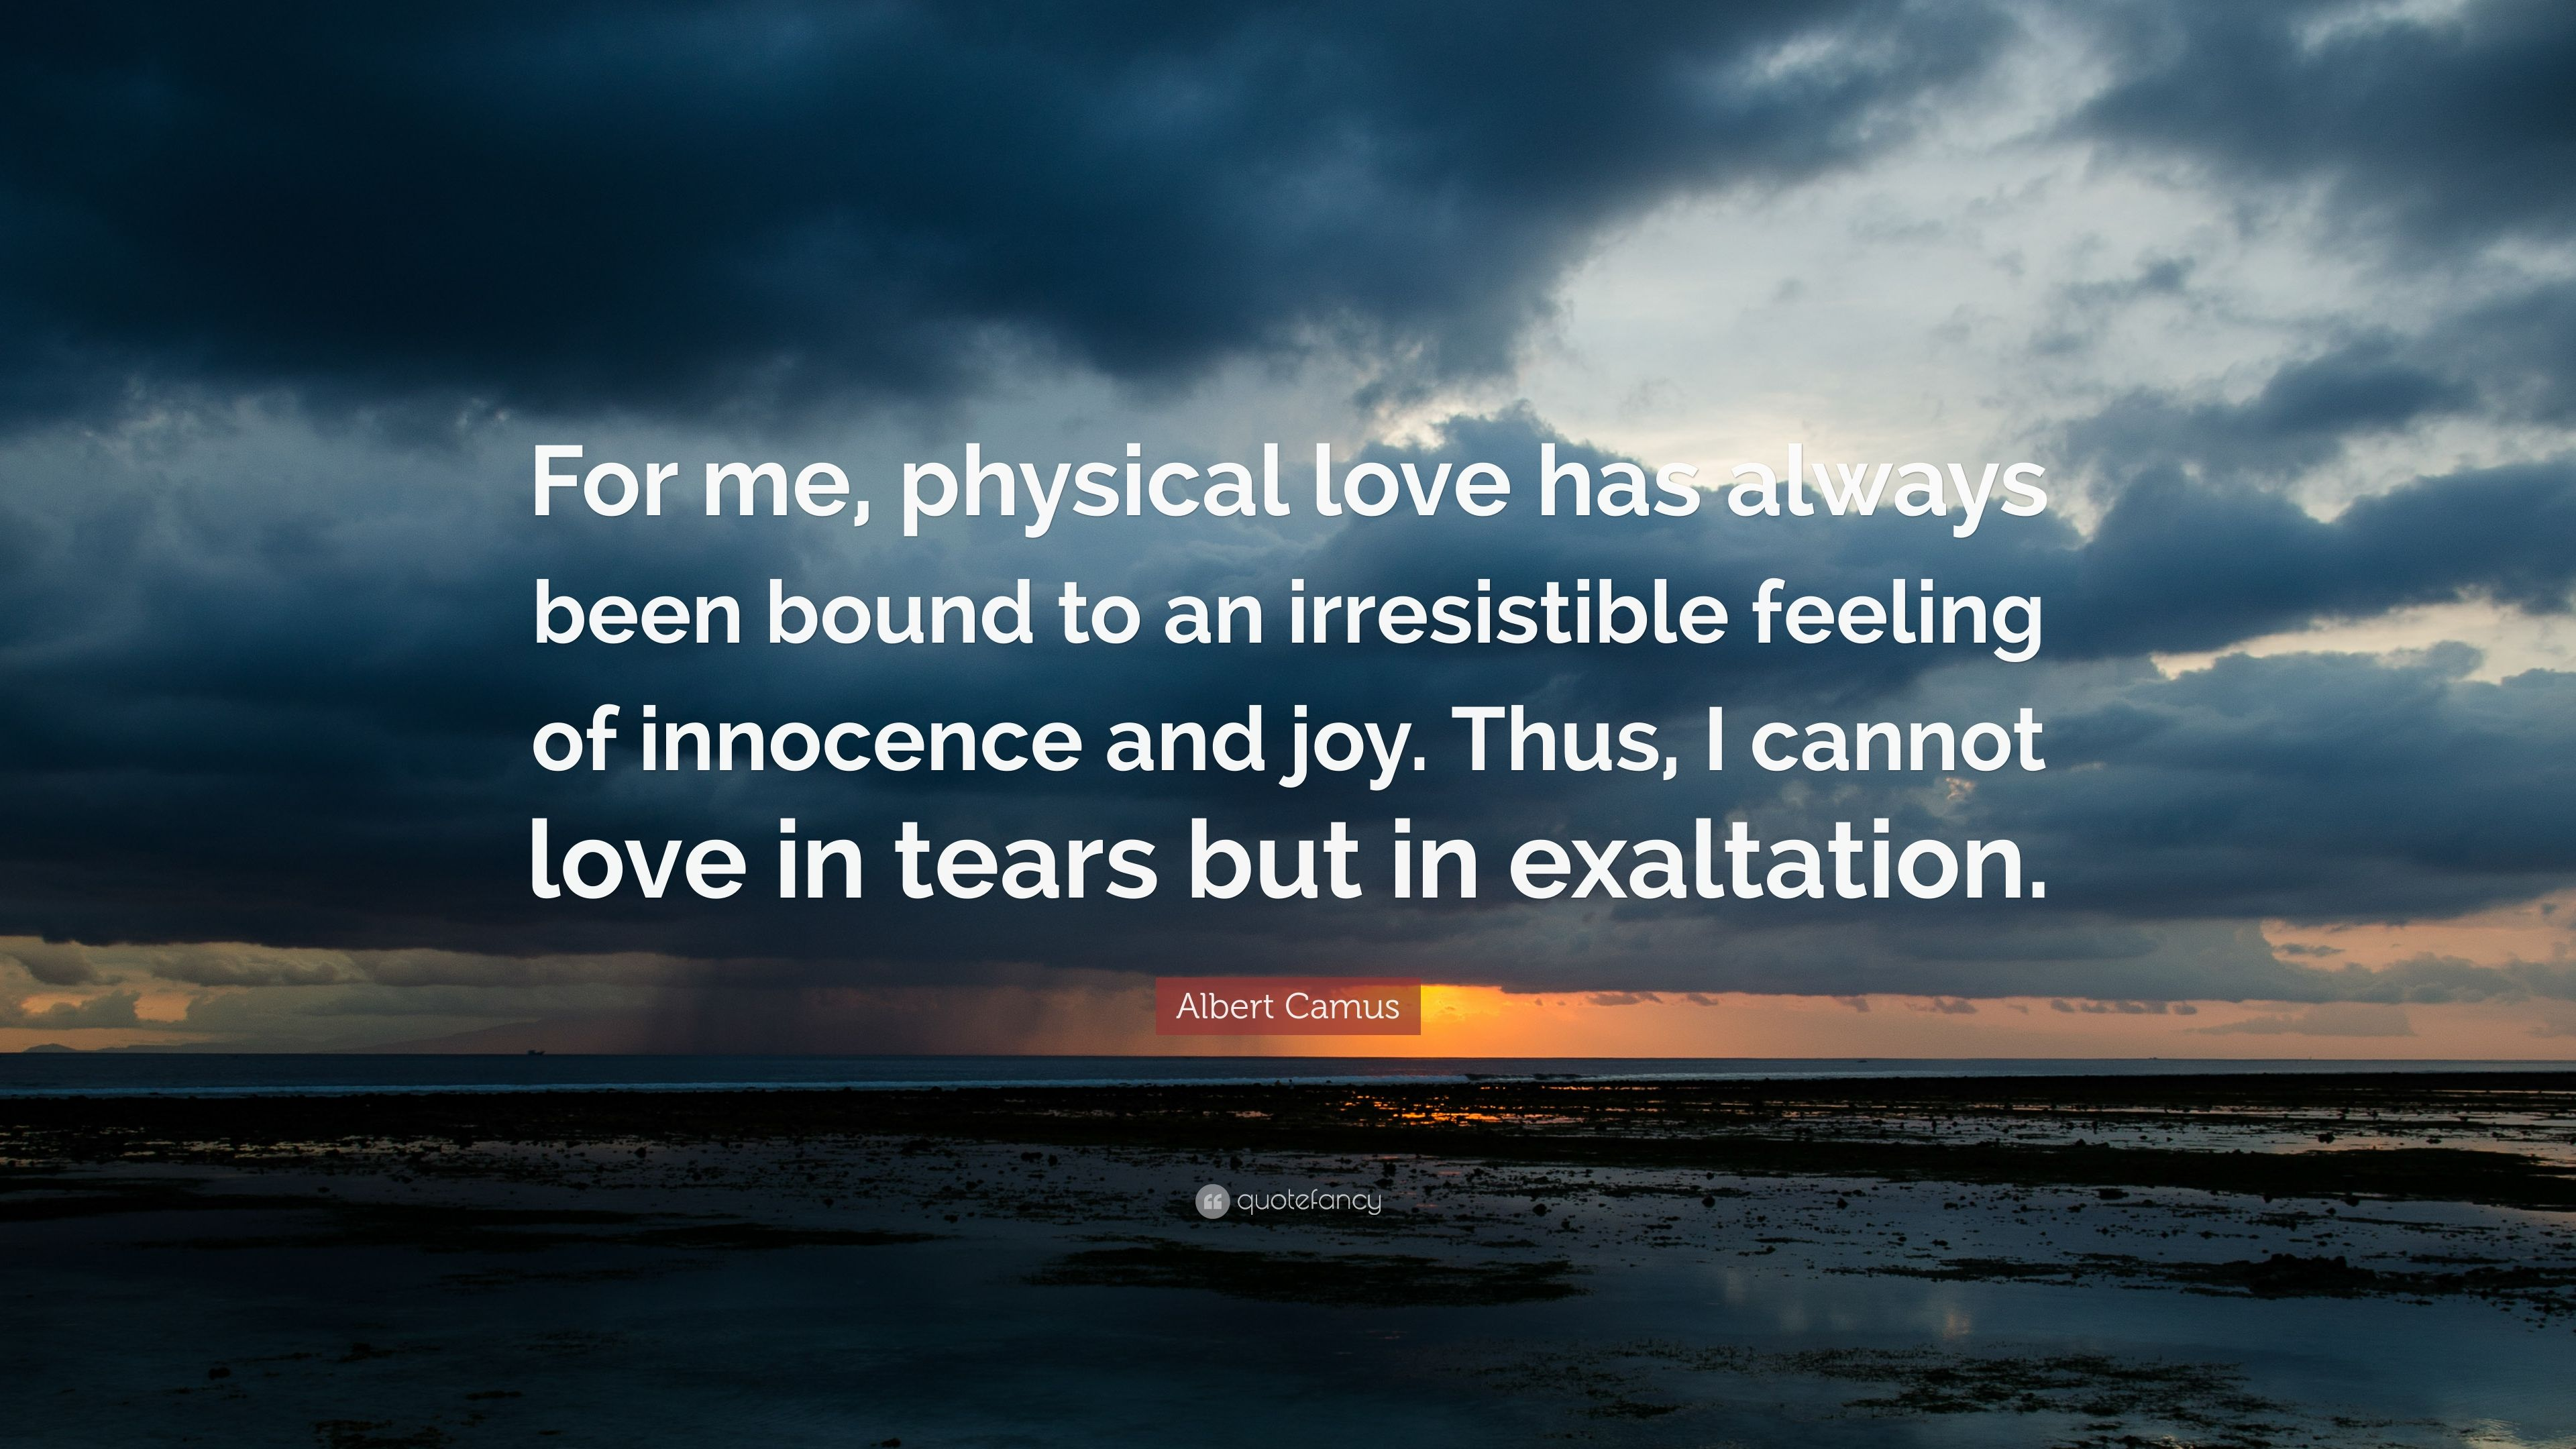 Albert Camus Quote For Me Physical Love Has Always Been Bound To An Irresistible Feeling Of Innocence And Joy Thus I Cannot Love In Tear 10 Wallpapers Quotefancy